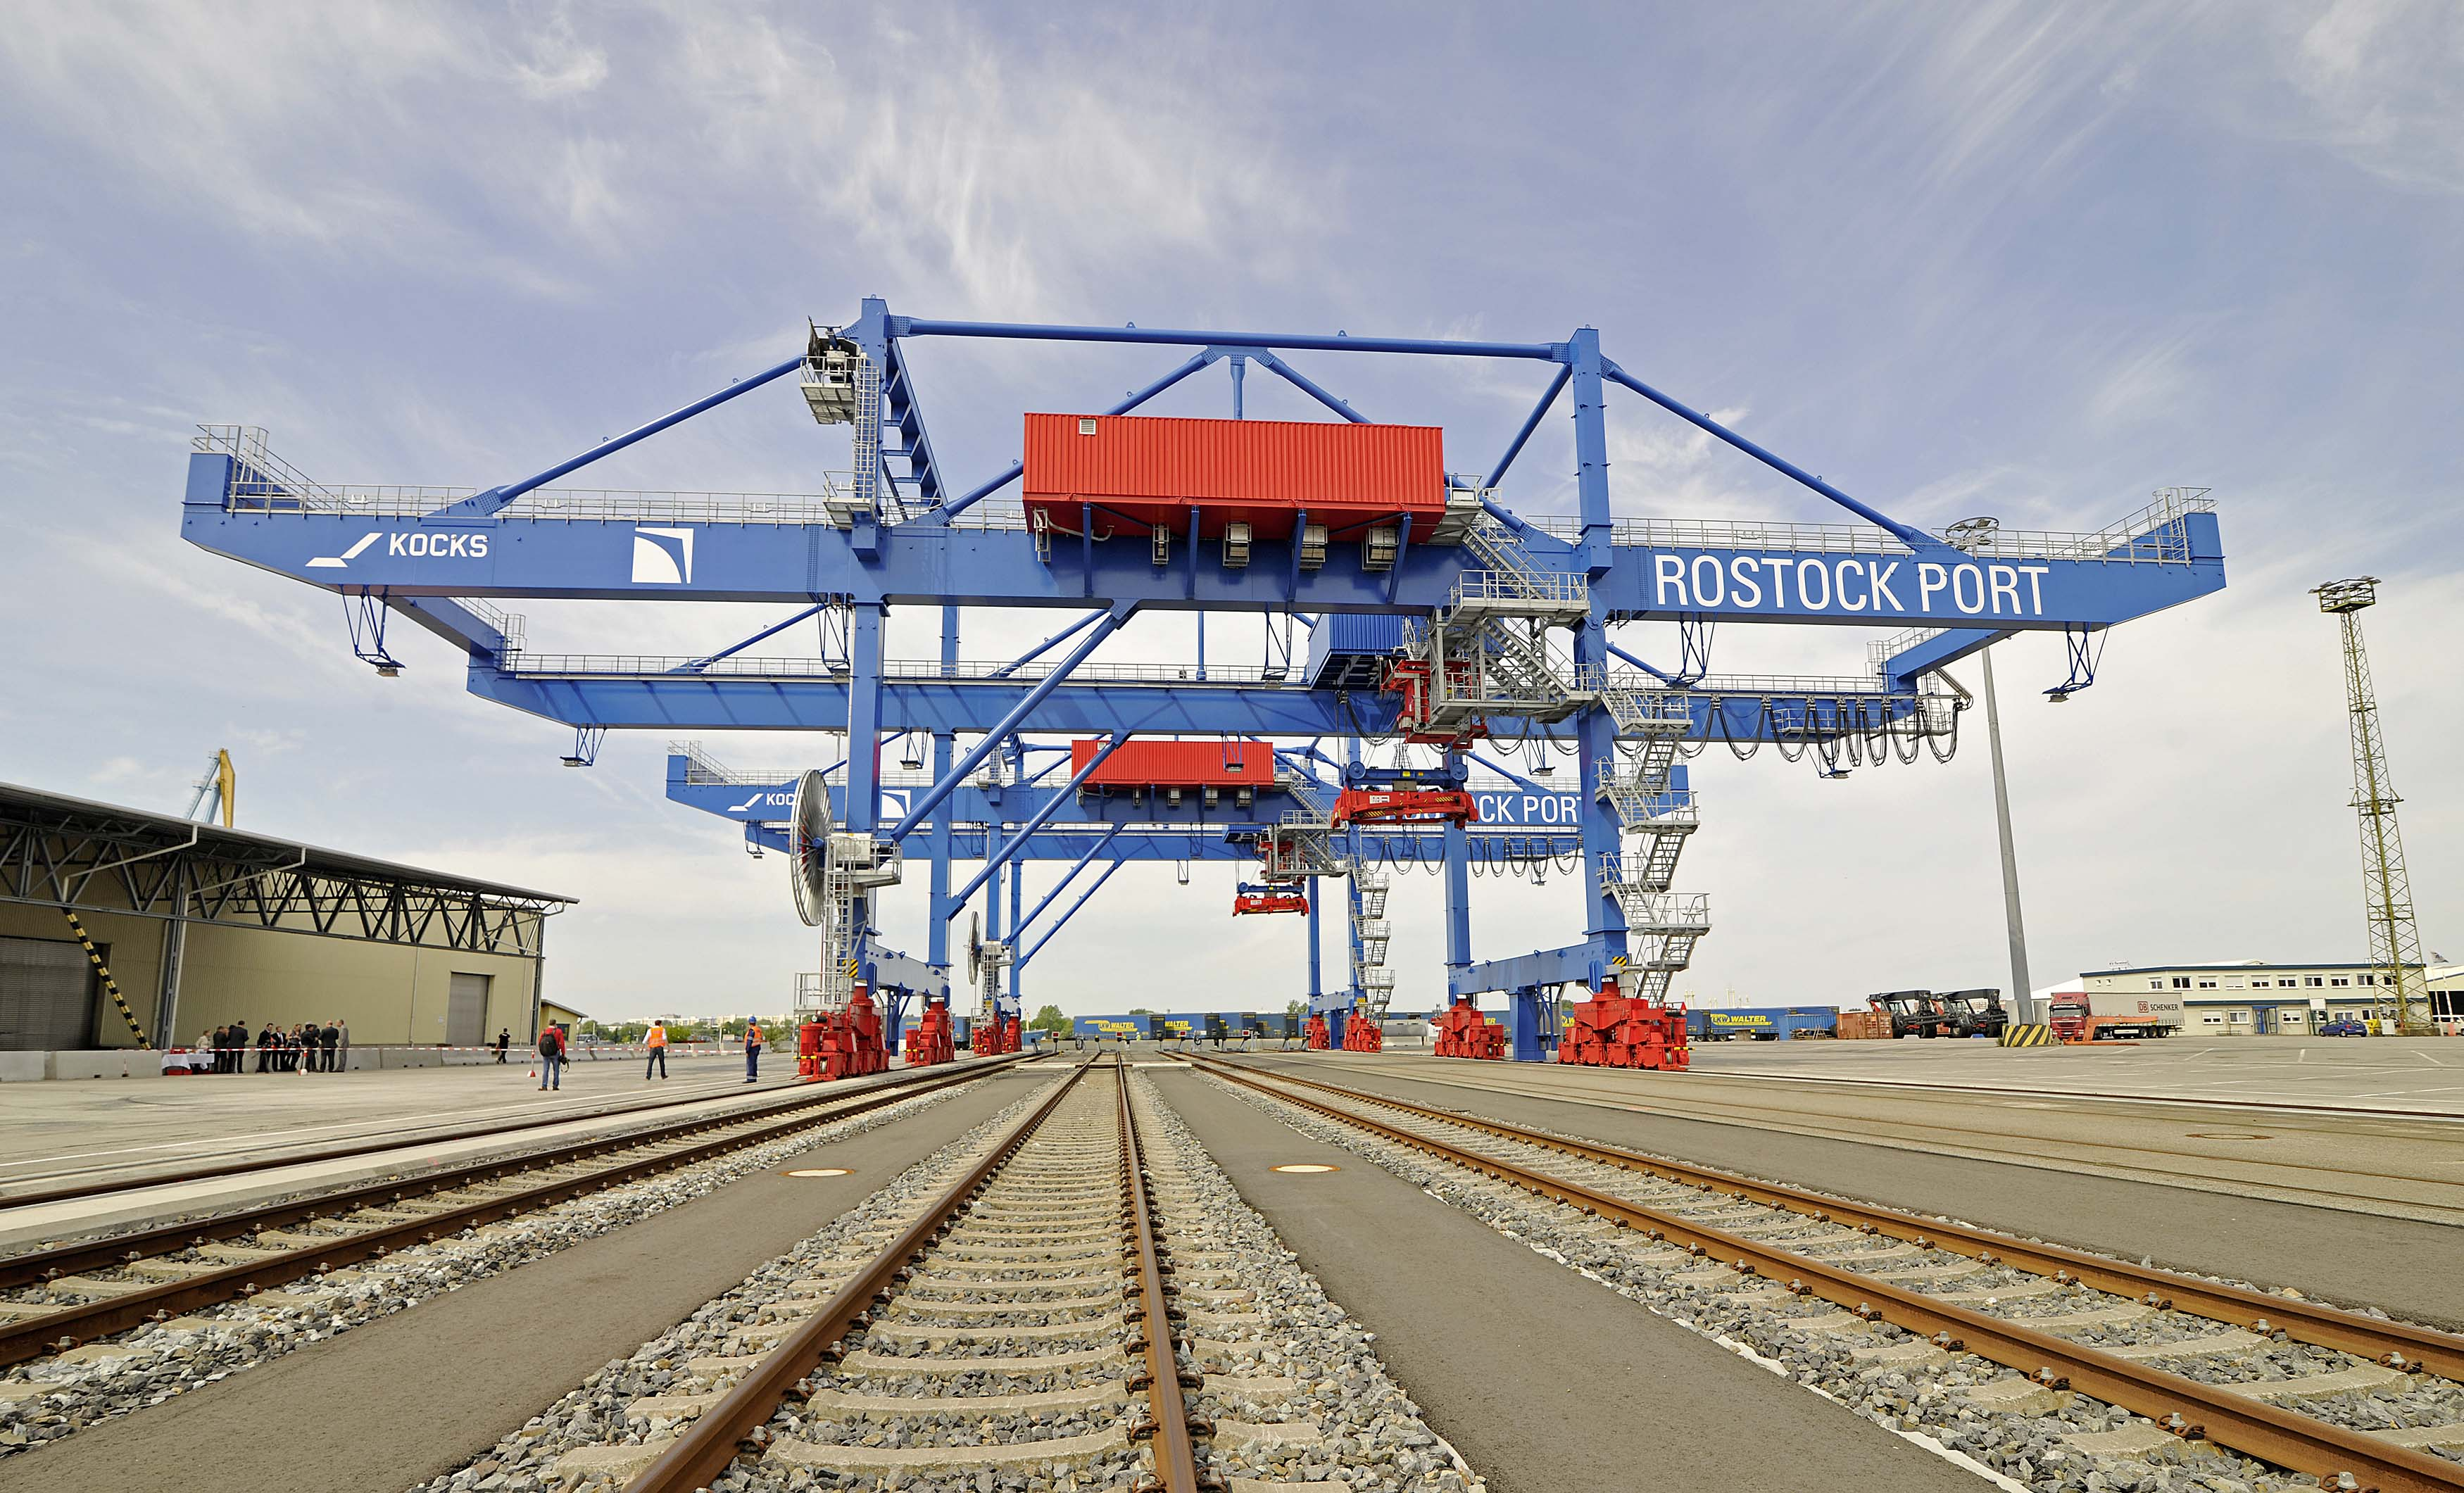 Rostock Port - Harbours review